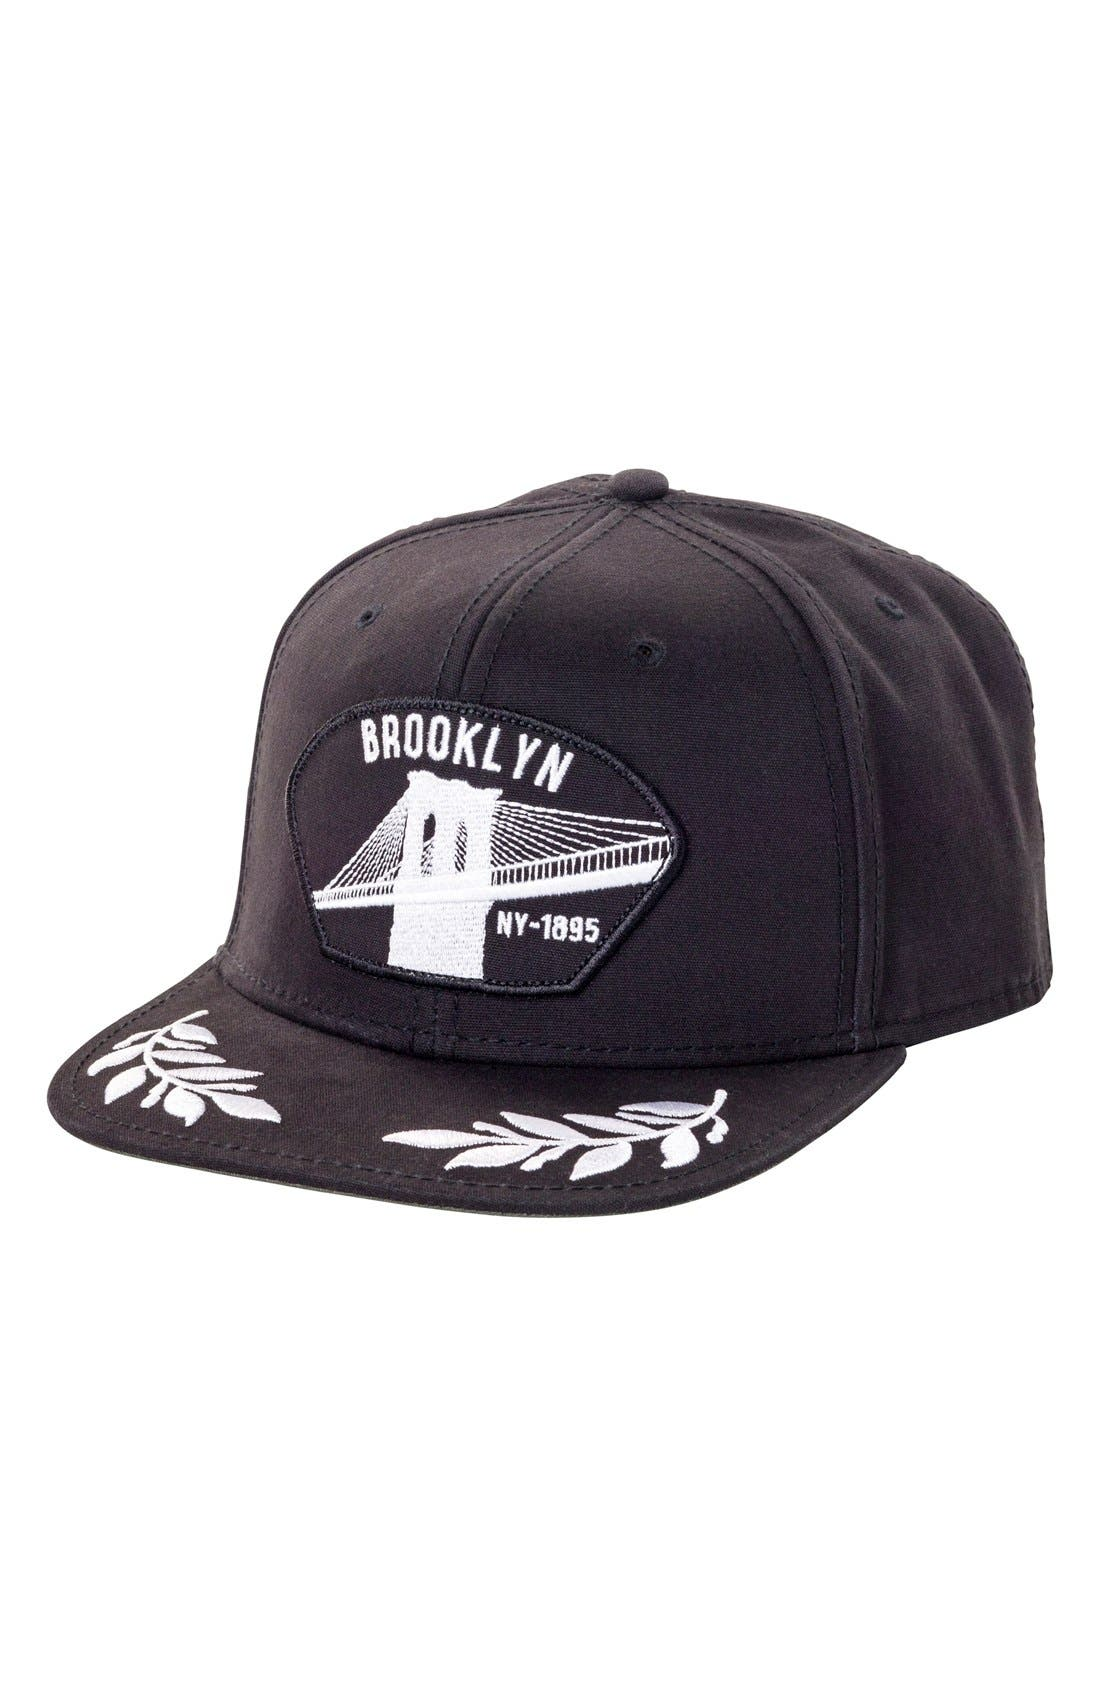 Alternate Image 1 Selected - Goorin Brothers 'Brooklyn NY' Baseball Cap